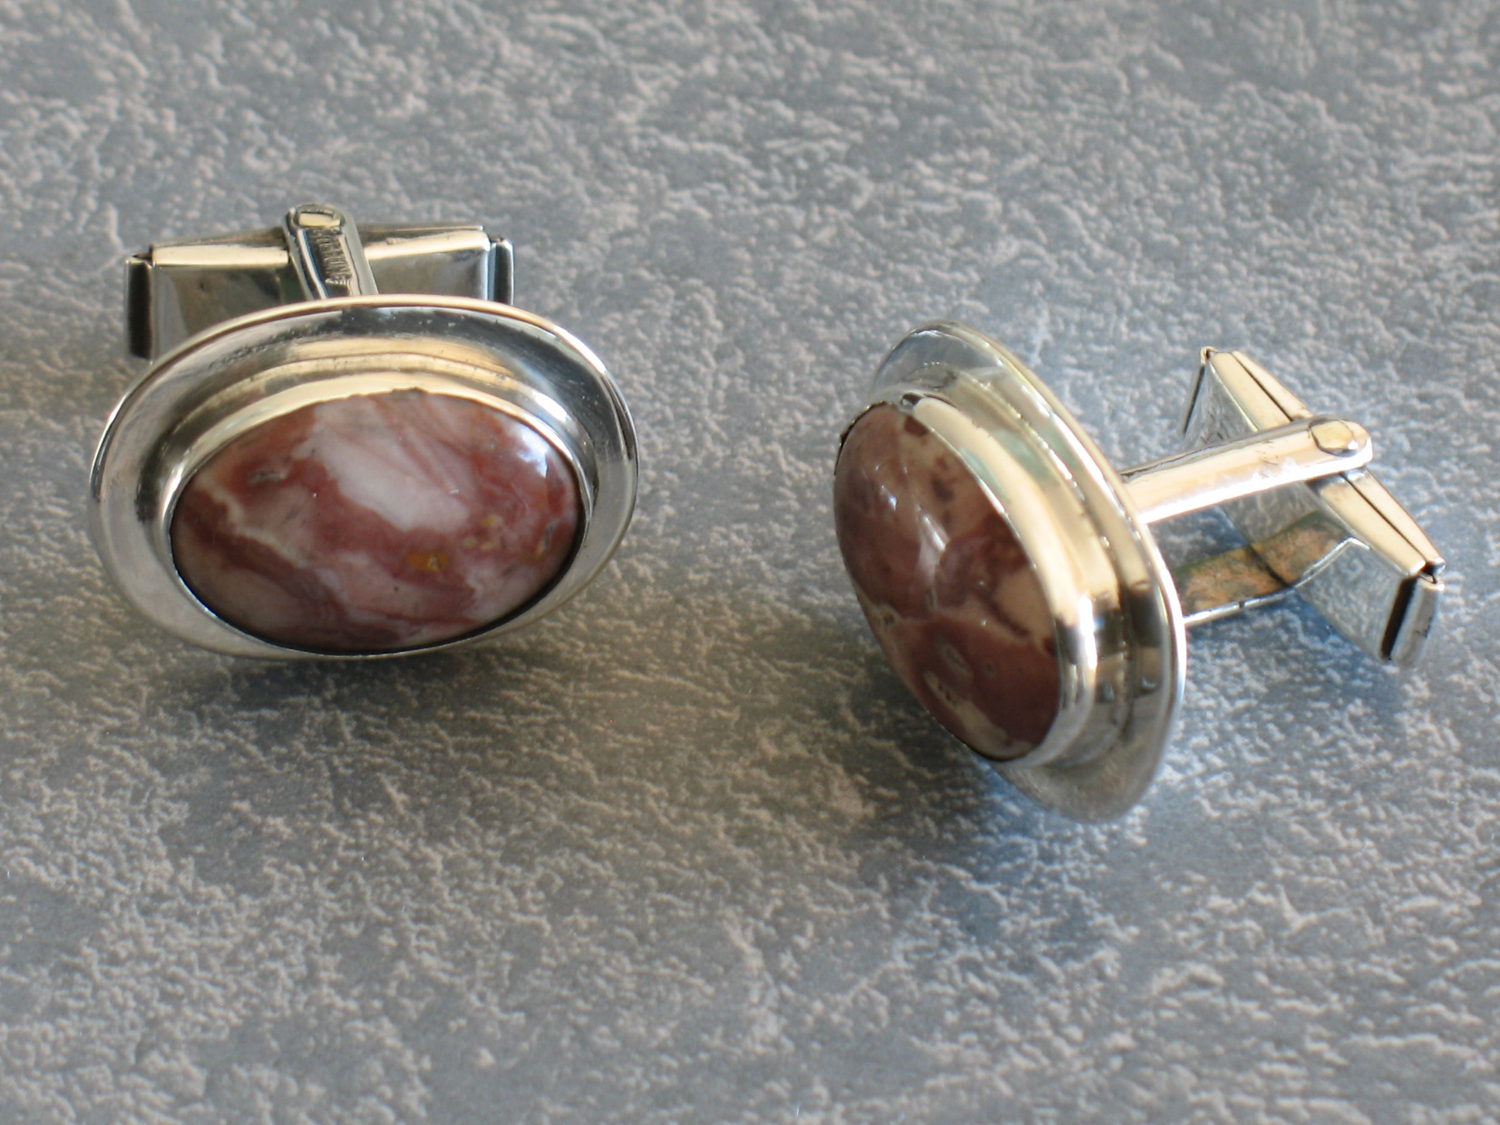 Sterling silver cufflinks repaired